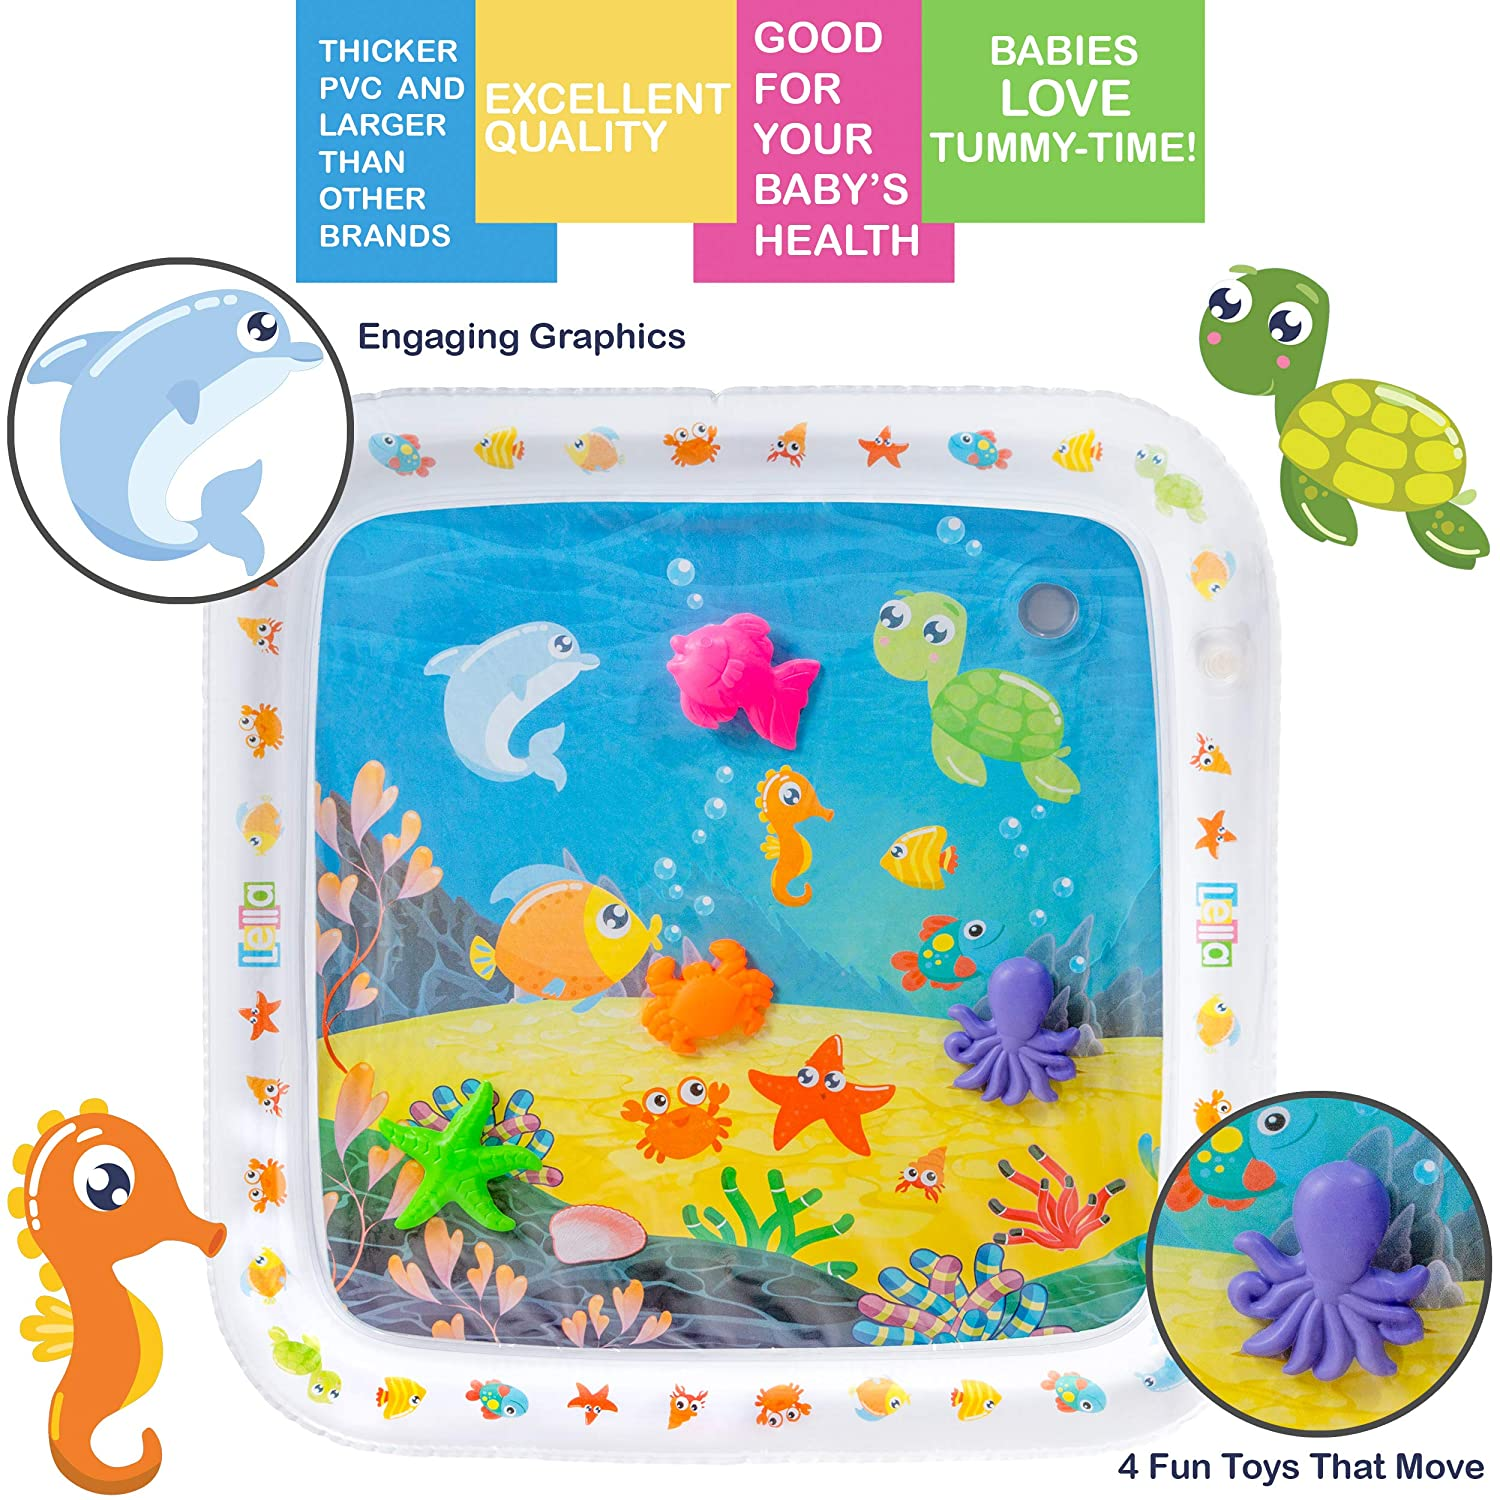 BPA Free Great Play Activity Center for Baby Stimulation and Growth Indoor /& Outdoor Play Mat Developmental Lella Premium Inflatable Tummy Time Water Mat for Babies Infants /& Toddlers